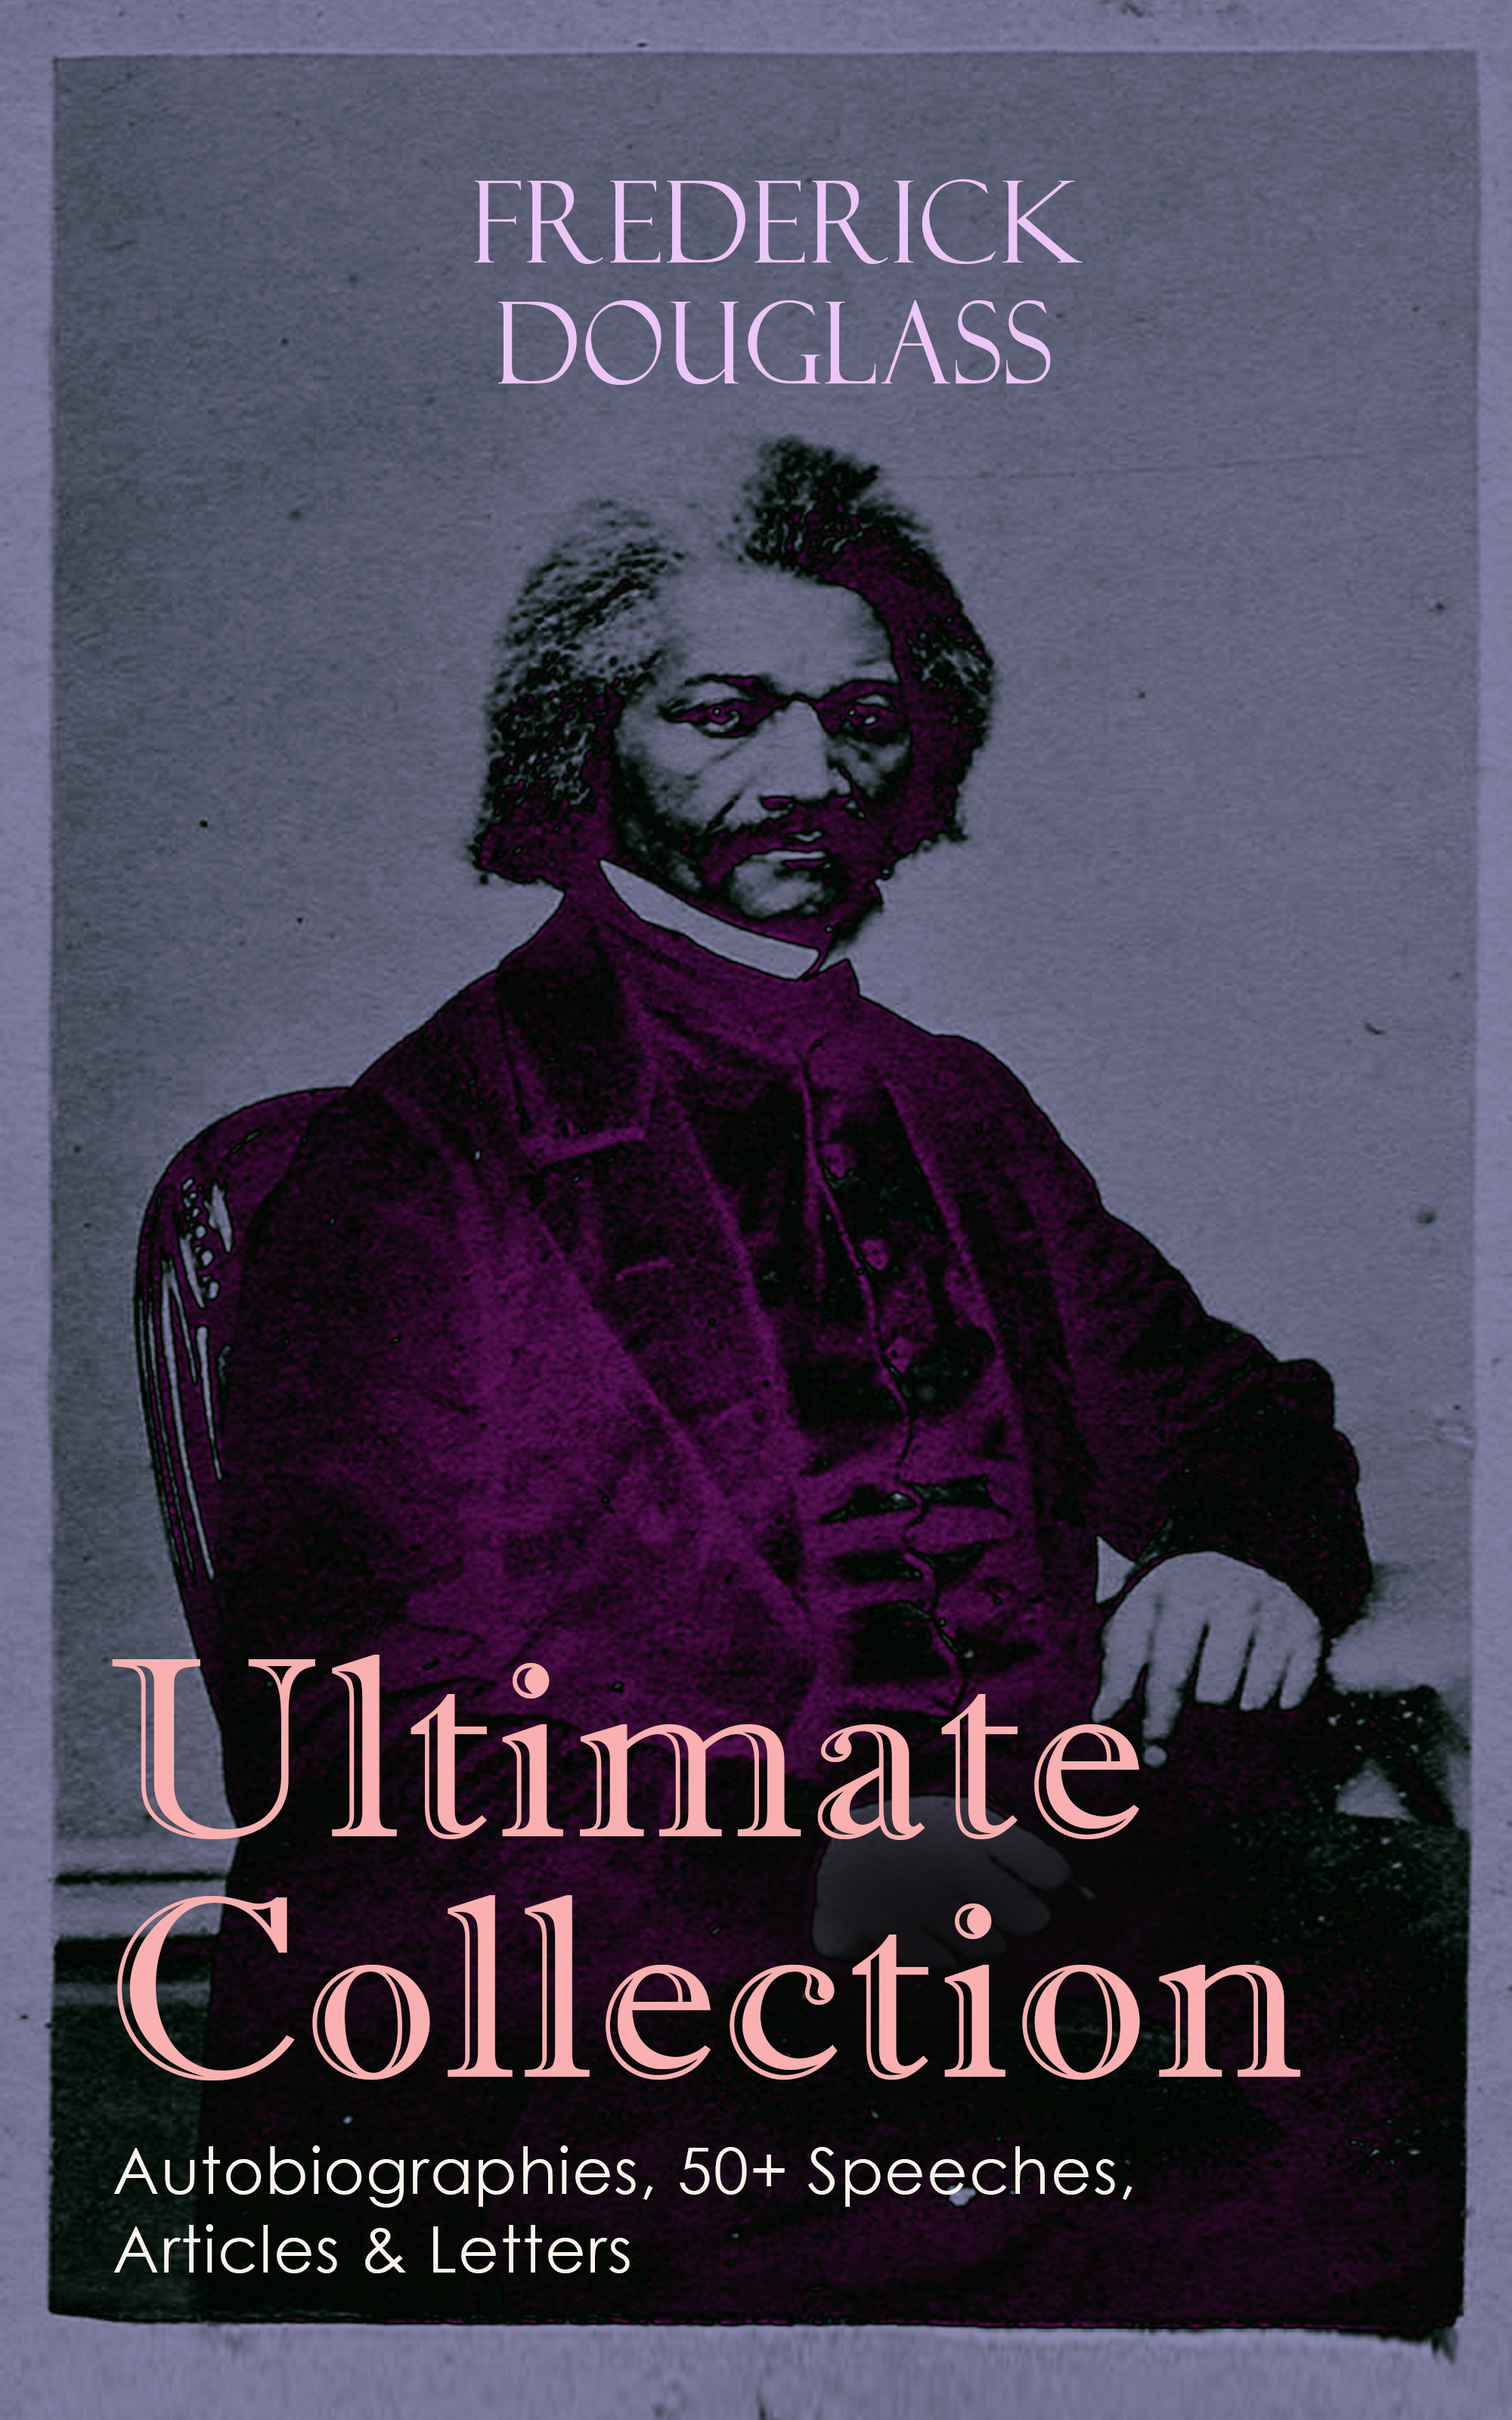 Фото - Frederick Douglass FREDERICK DOUGLASS Ultimate Collection: Autobiographies, 50+ Speeches, Articles & Letters frederick good general automobile workshop manual